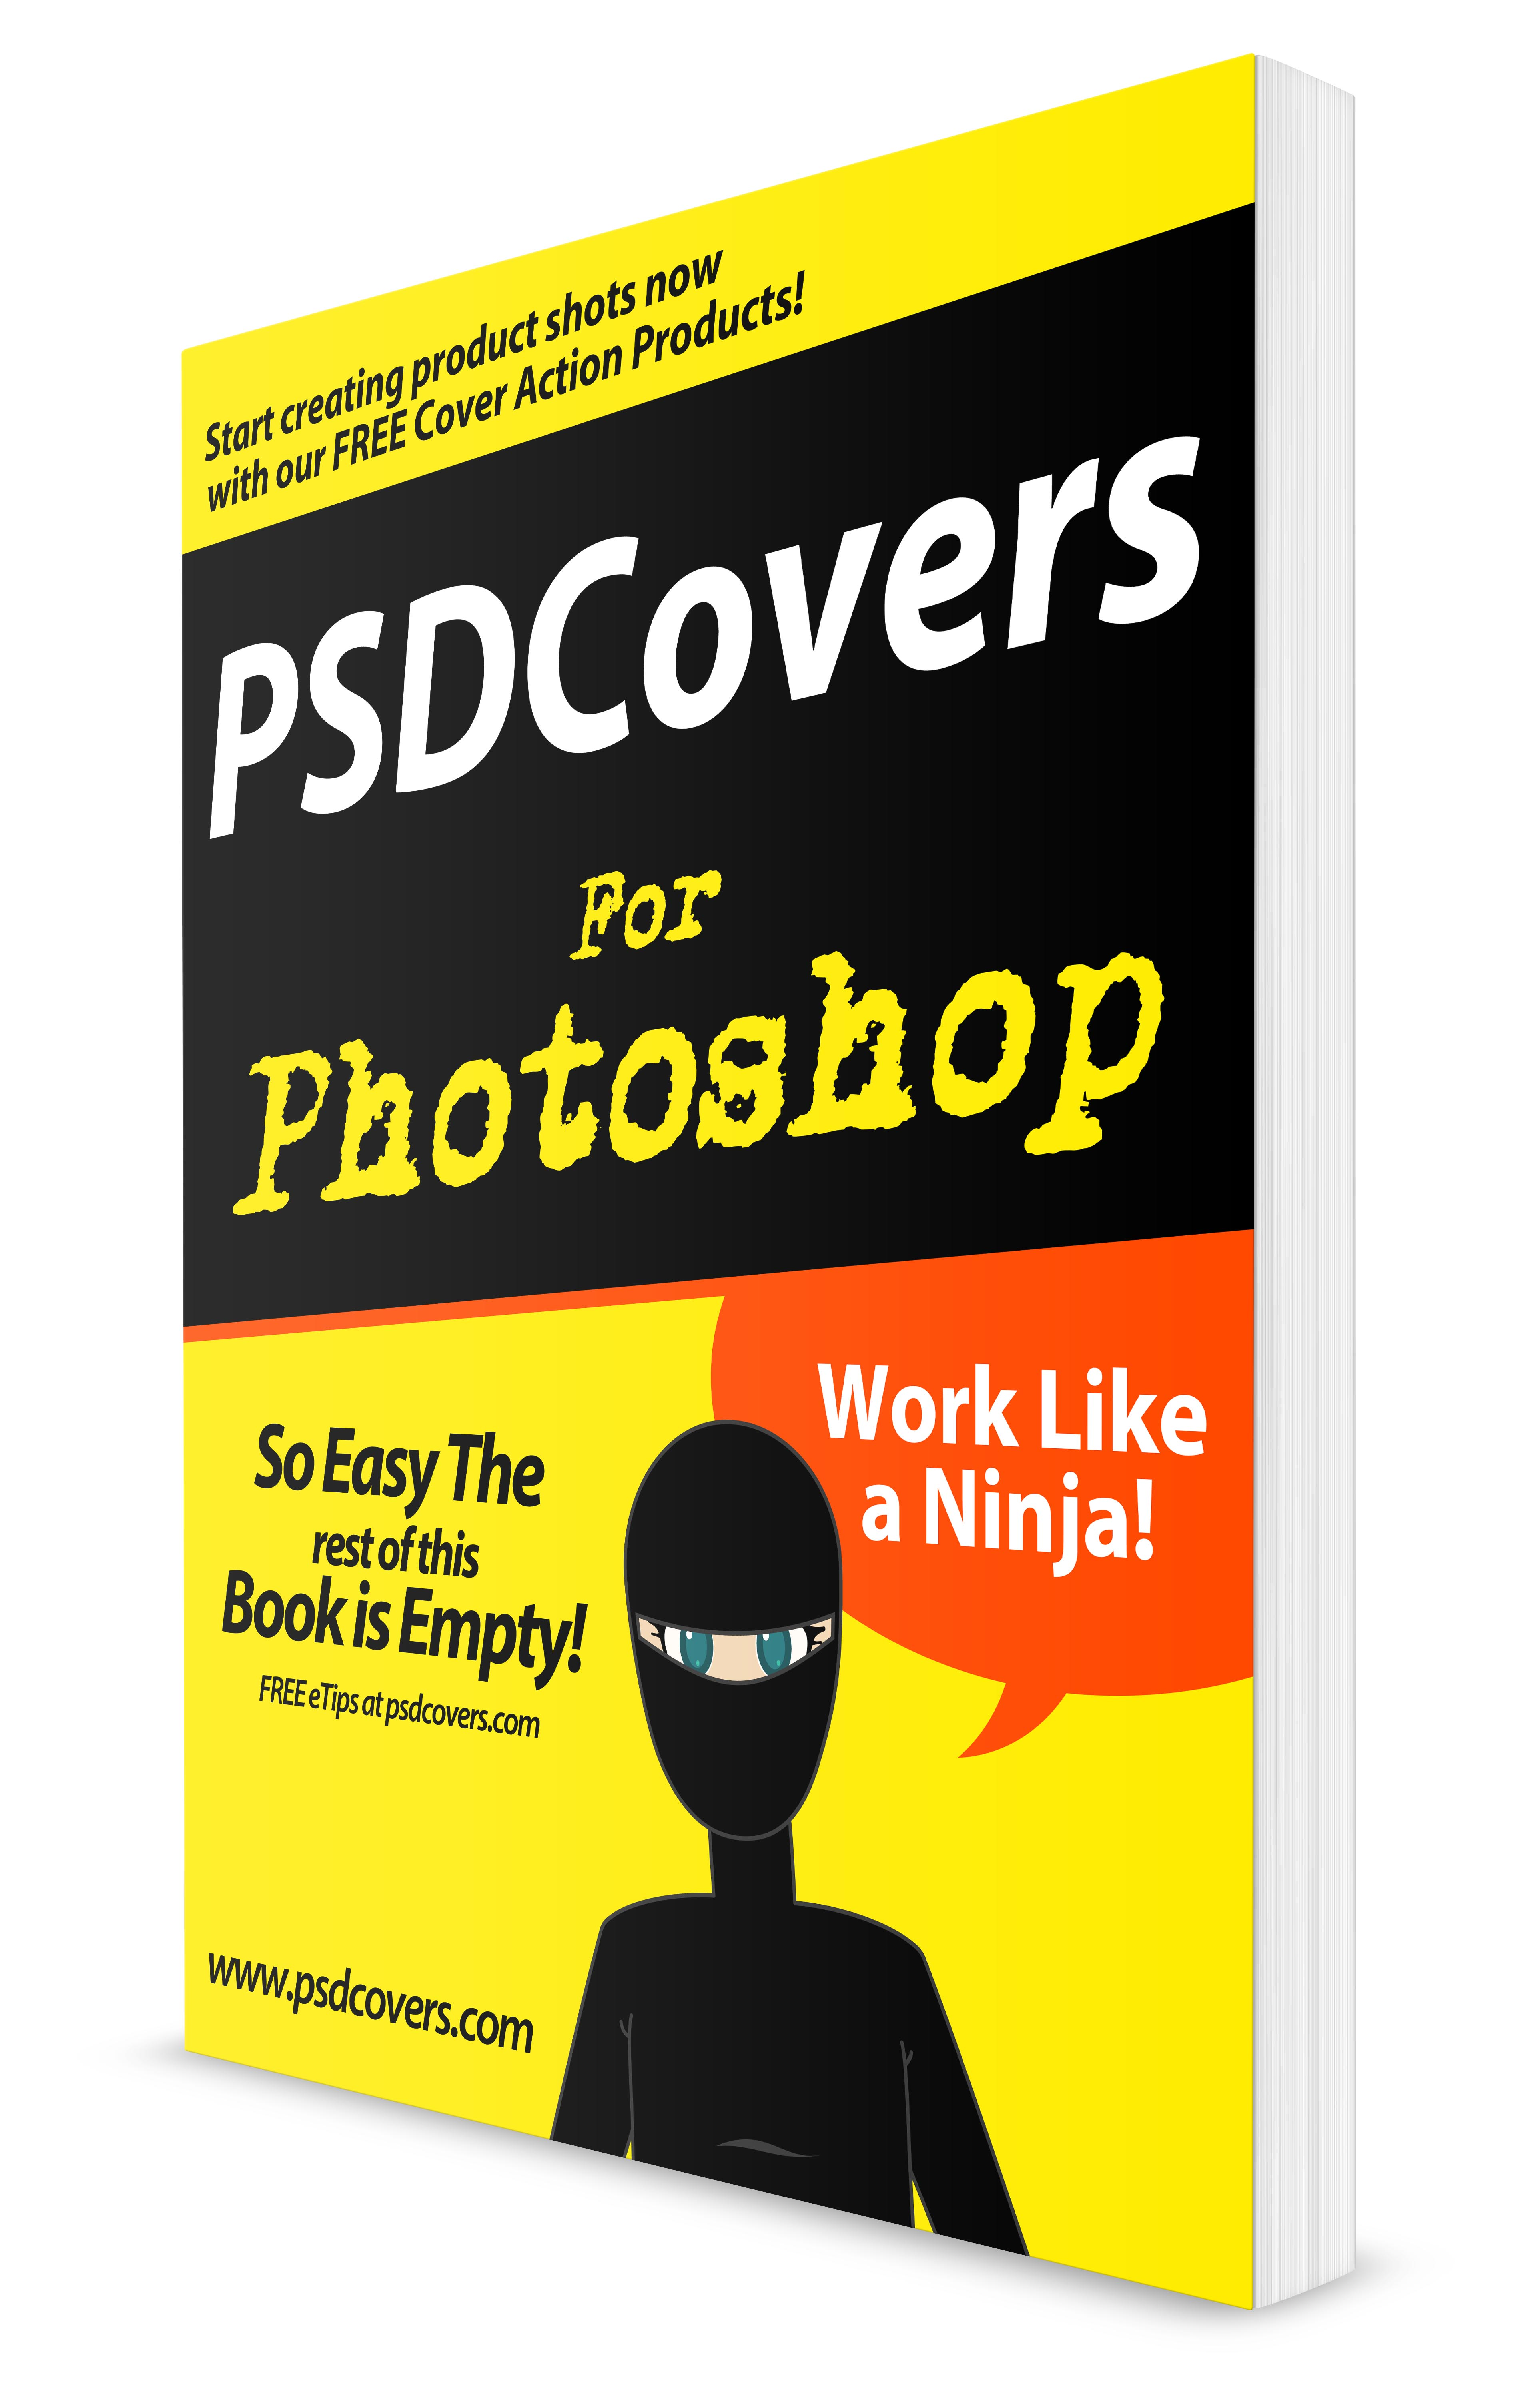 photoshop dummies manual documentation psd mockup template